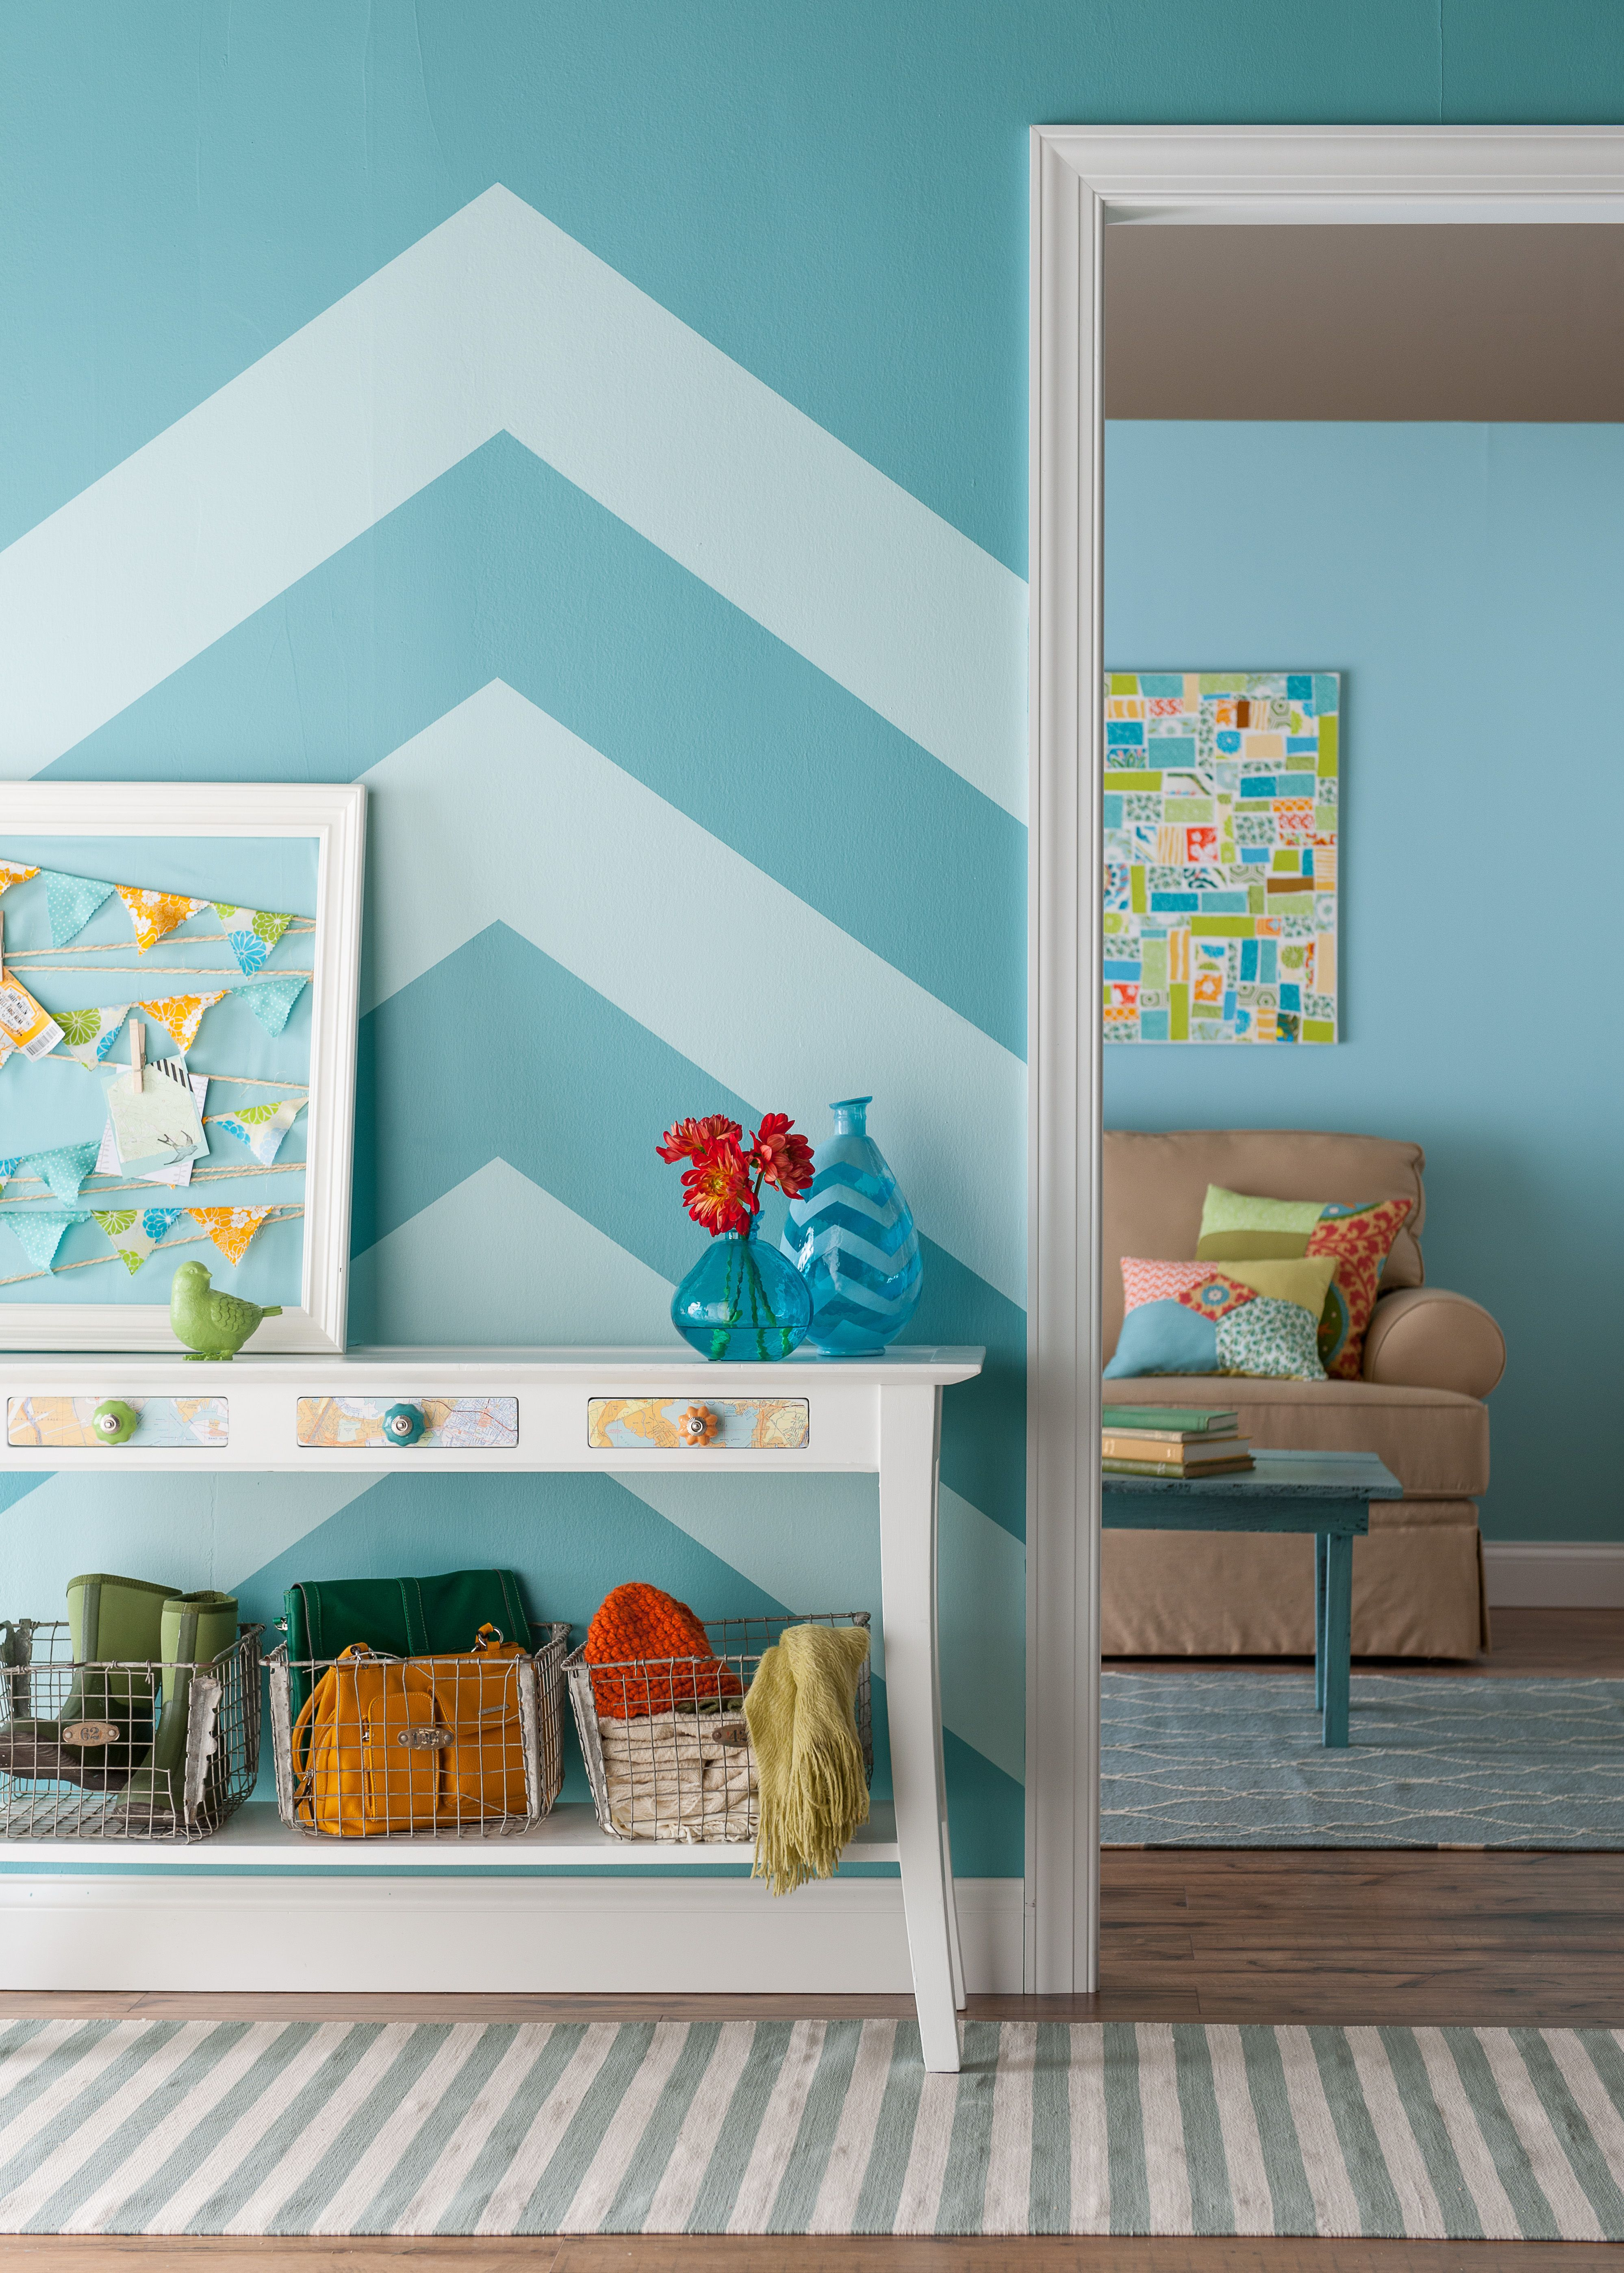 How To Paint A Chevron Pattern Chevron Patterns Walls And Room